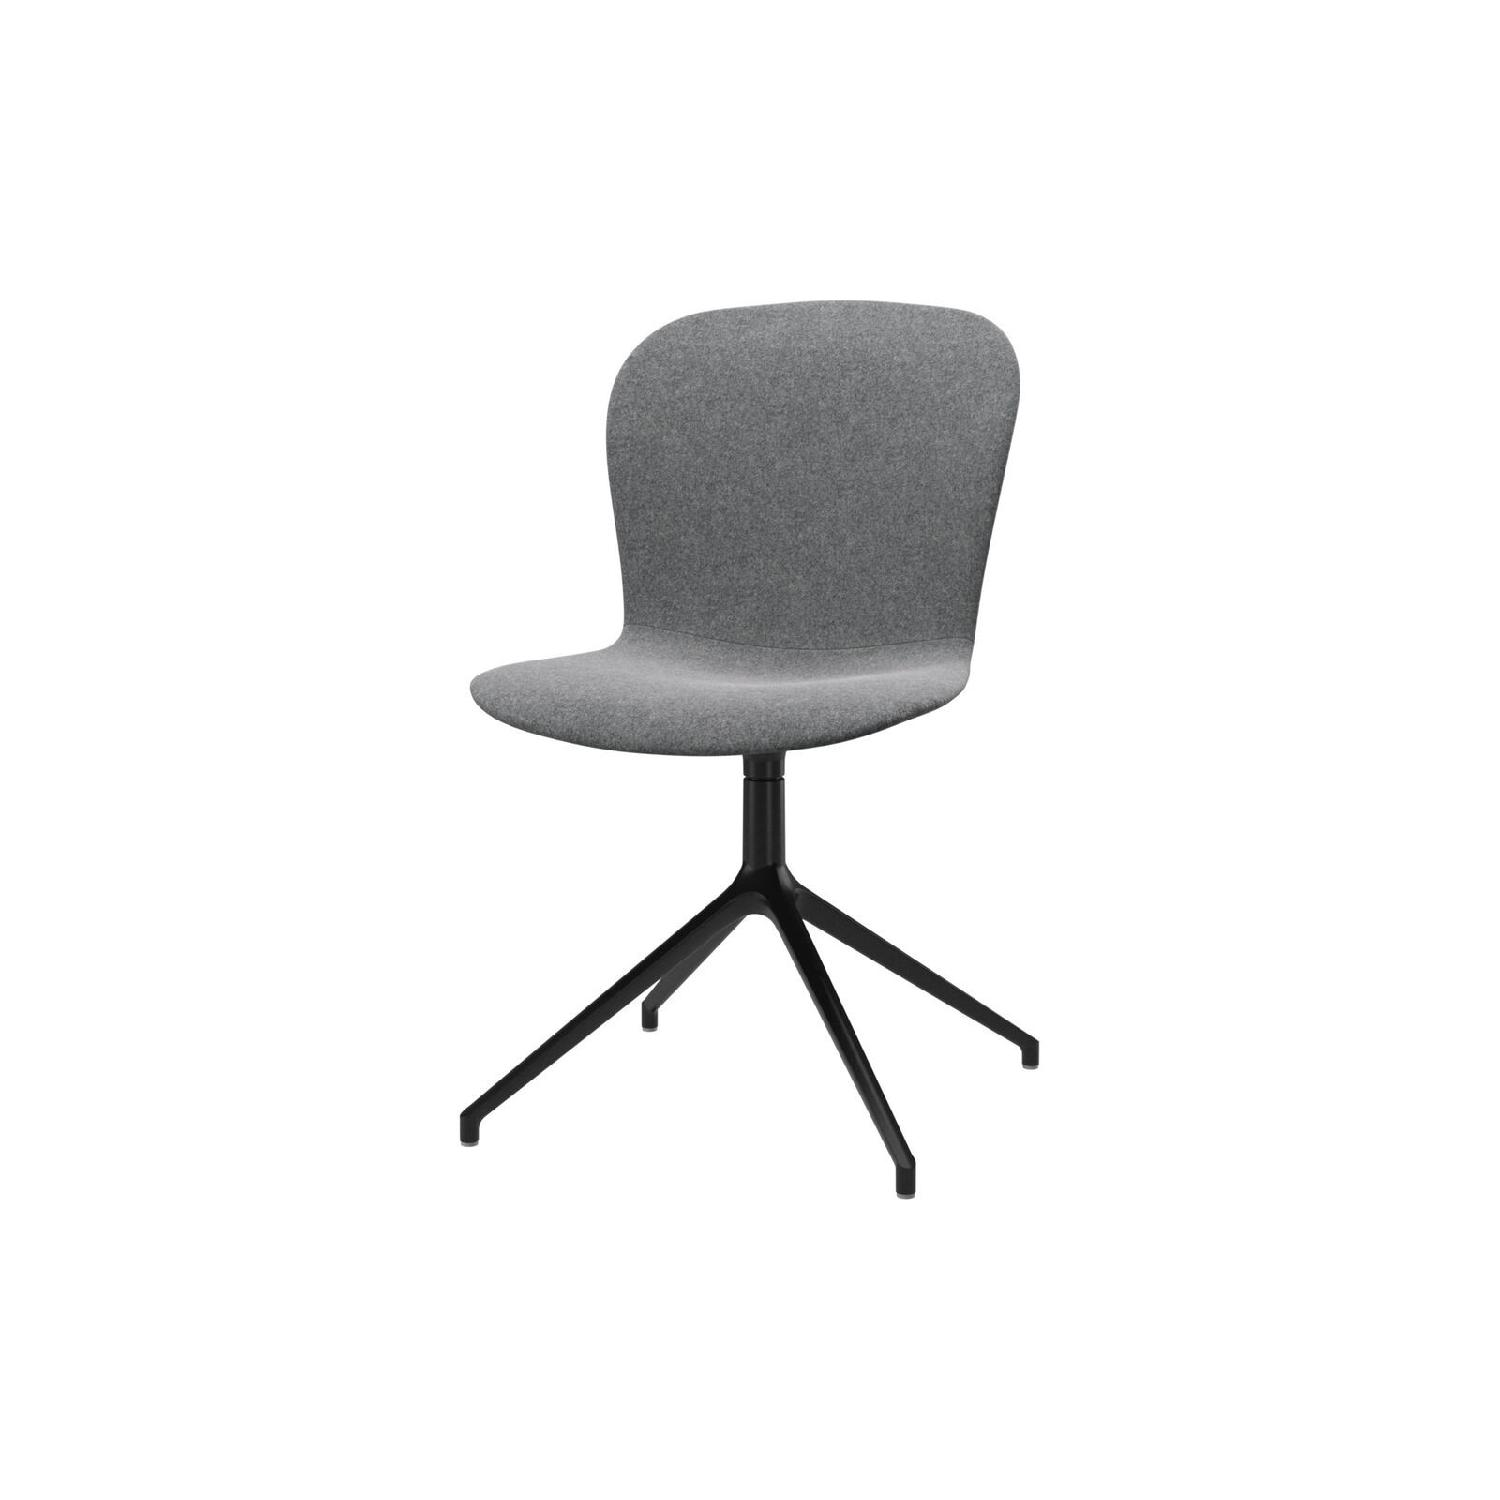 BoConcept Adelaide Office/Dining Chair w/ Swivel Motion - image-0